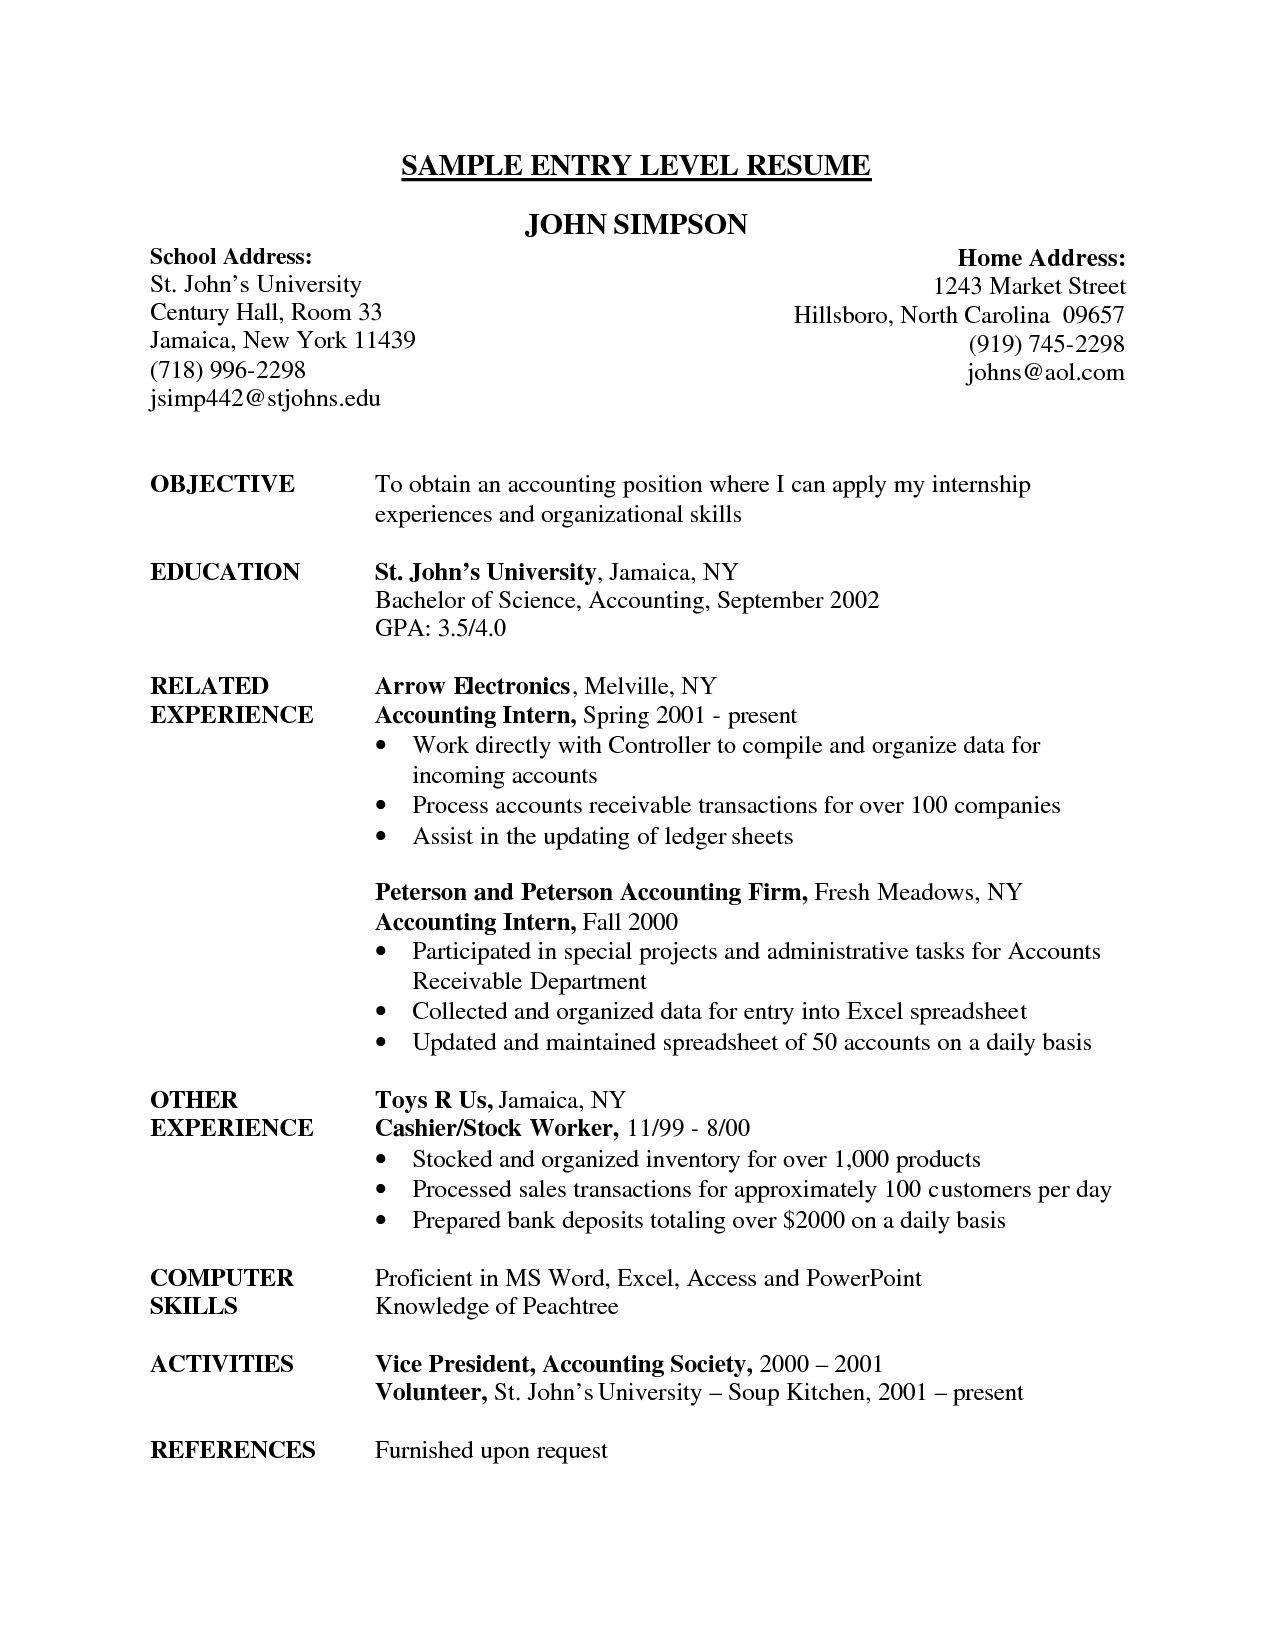 Career Objective Statement Examples Gorgeous Resume Examples Entry Level  Resume Examples  Pinterest  Resume .